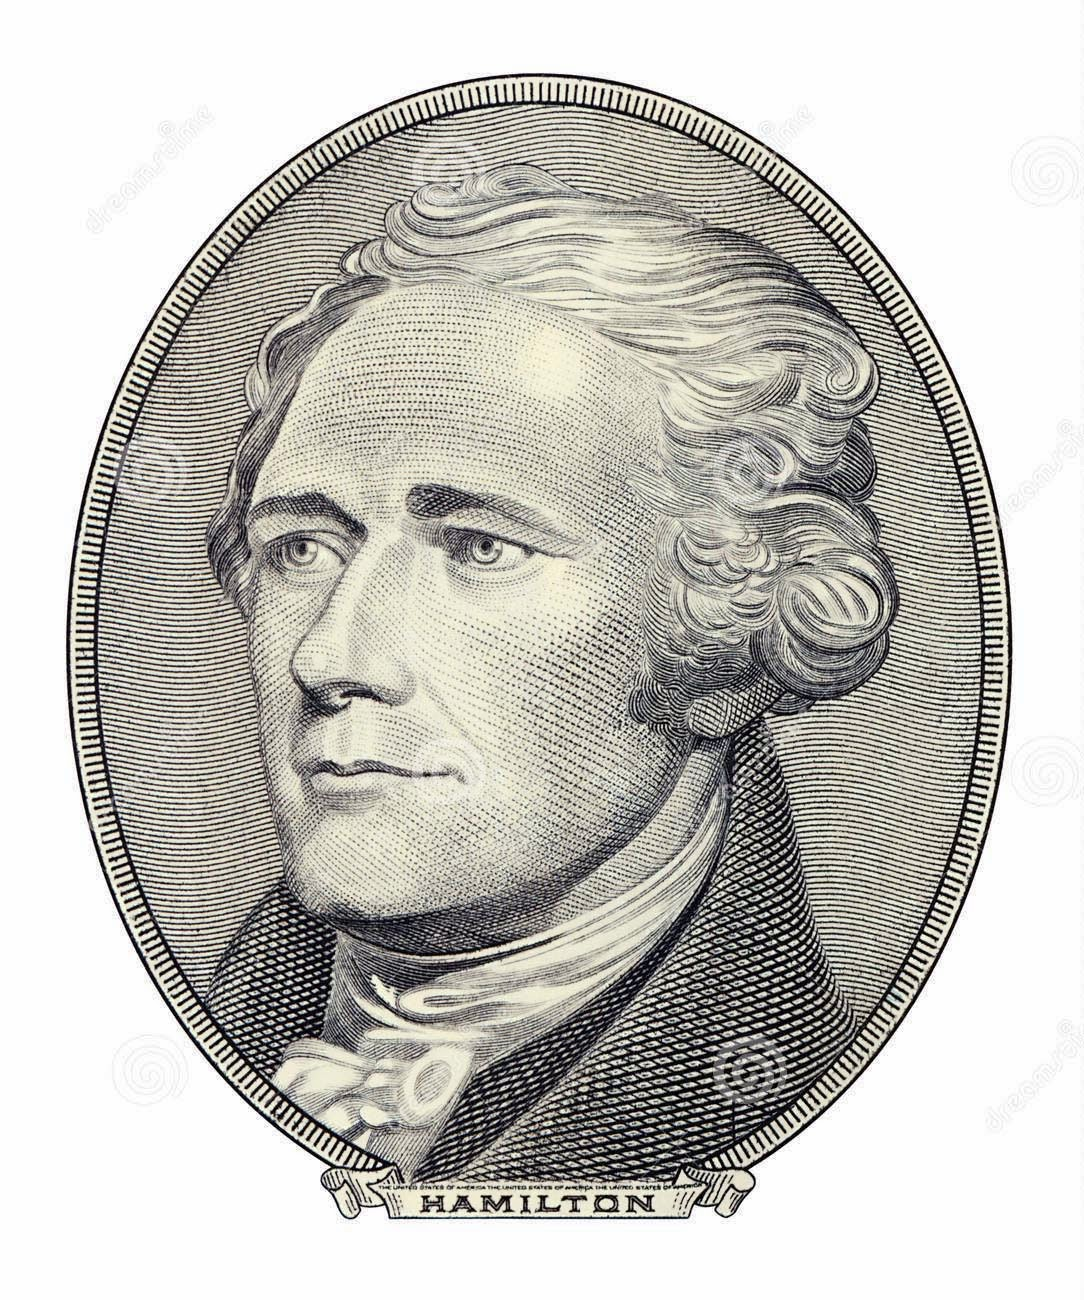 Engraving of Alexander Hamilton